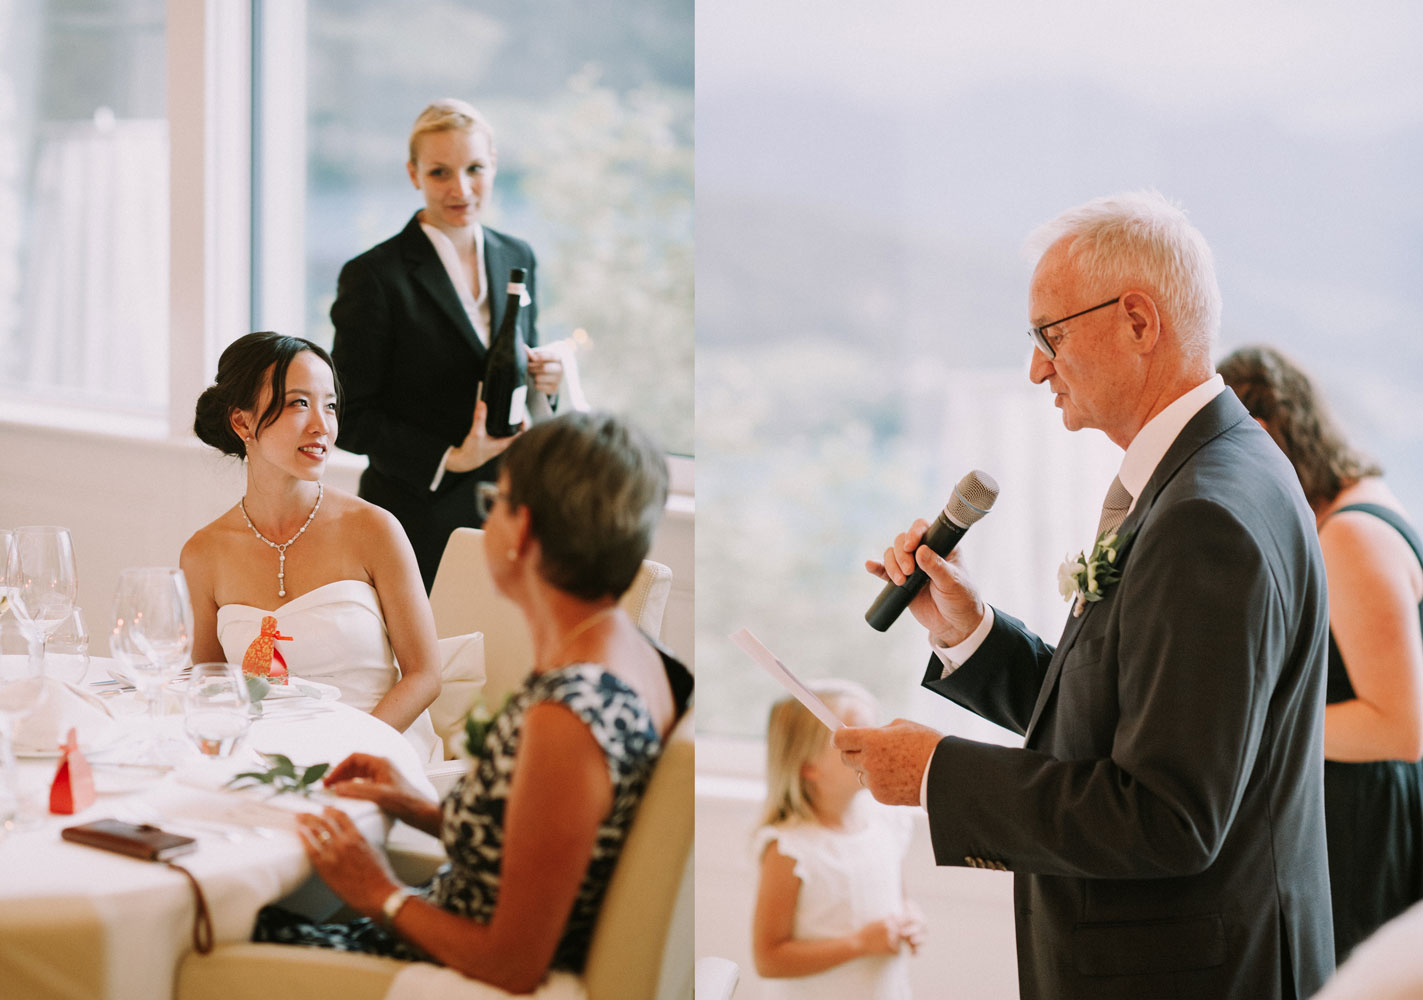 wedding_photographer_luzern_vitznau_44.jpg